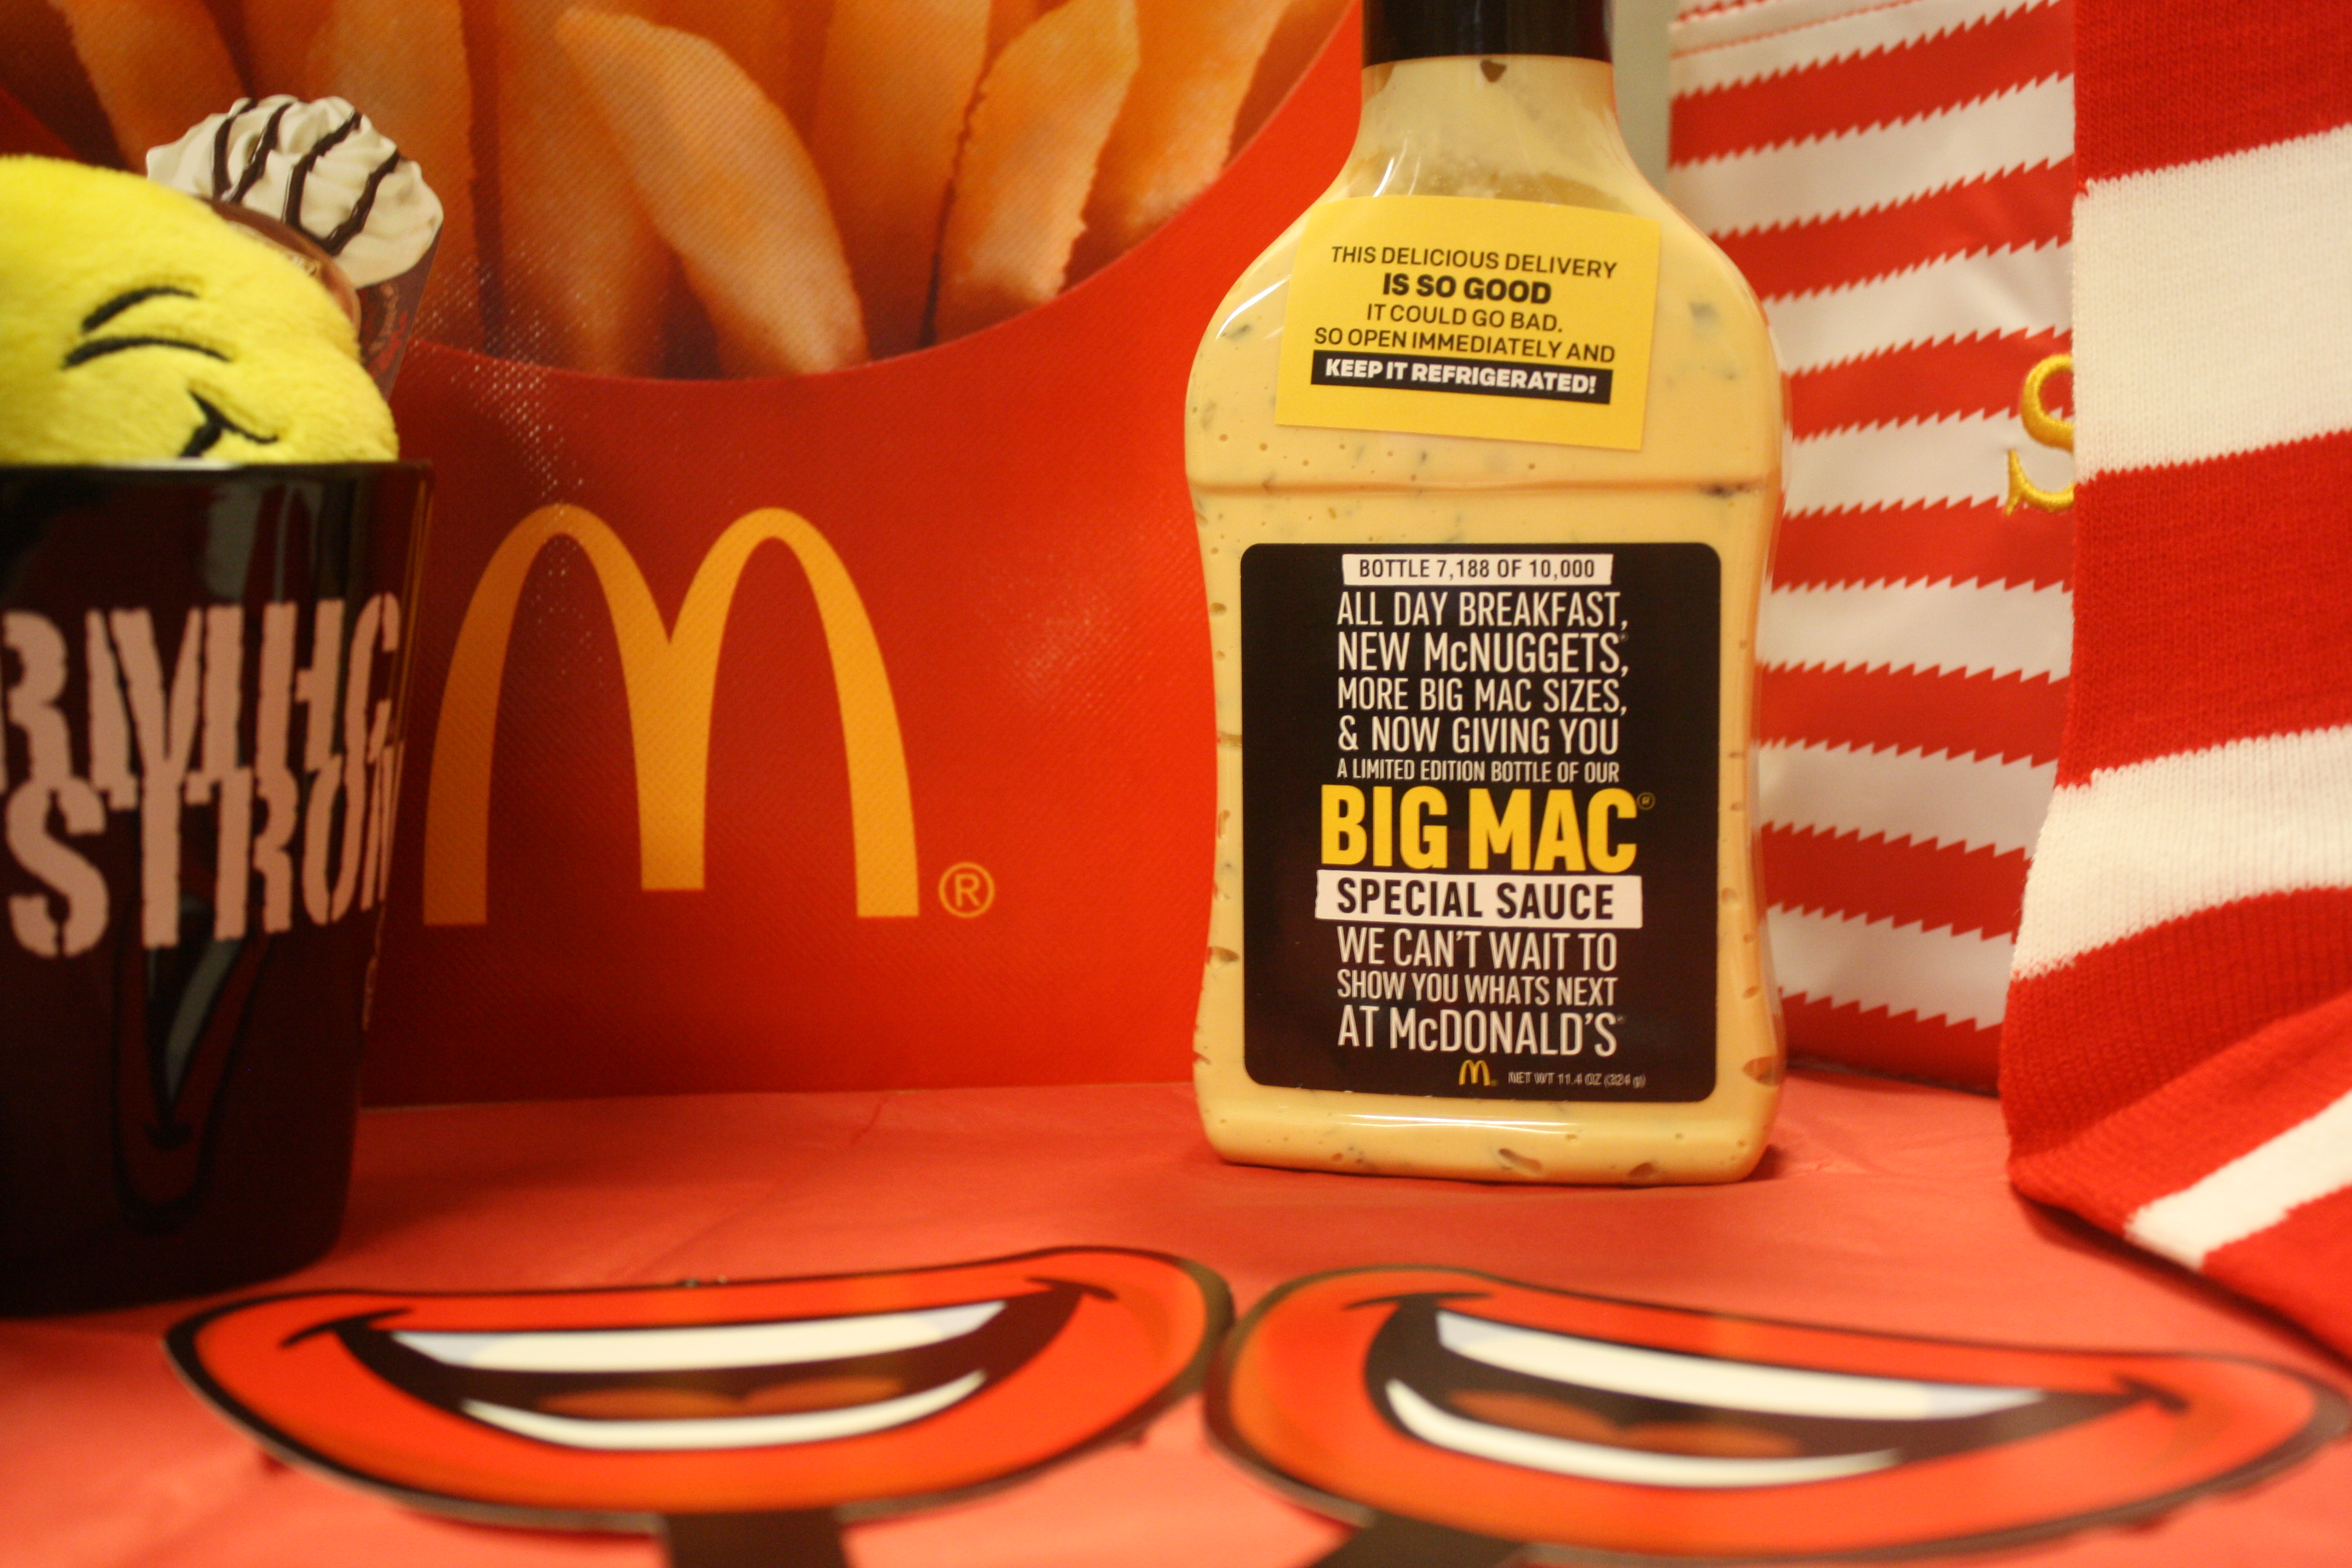 Big Mac Special Sauce for Auction to Benefit RMHC Dayton - Ronald McDonald House Charities Dayton